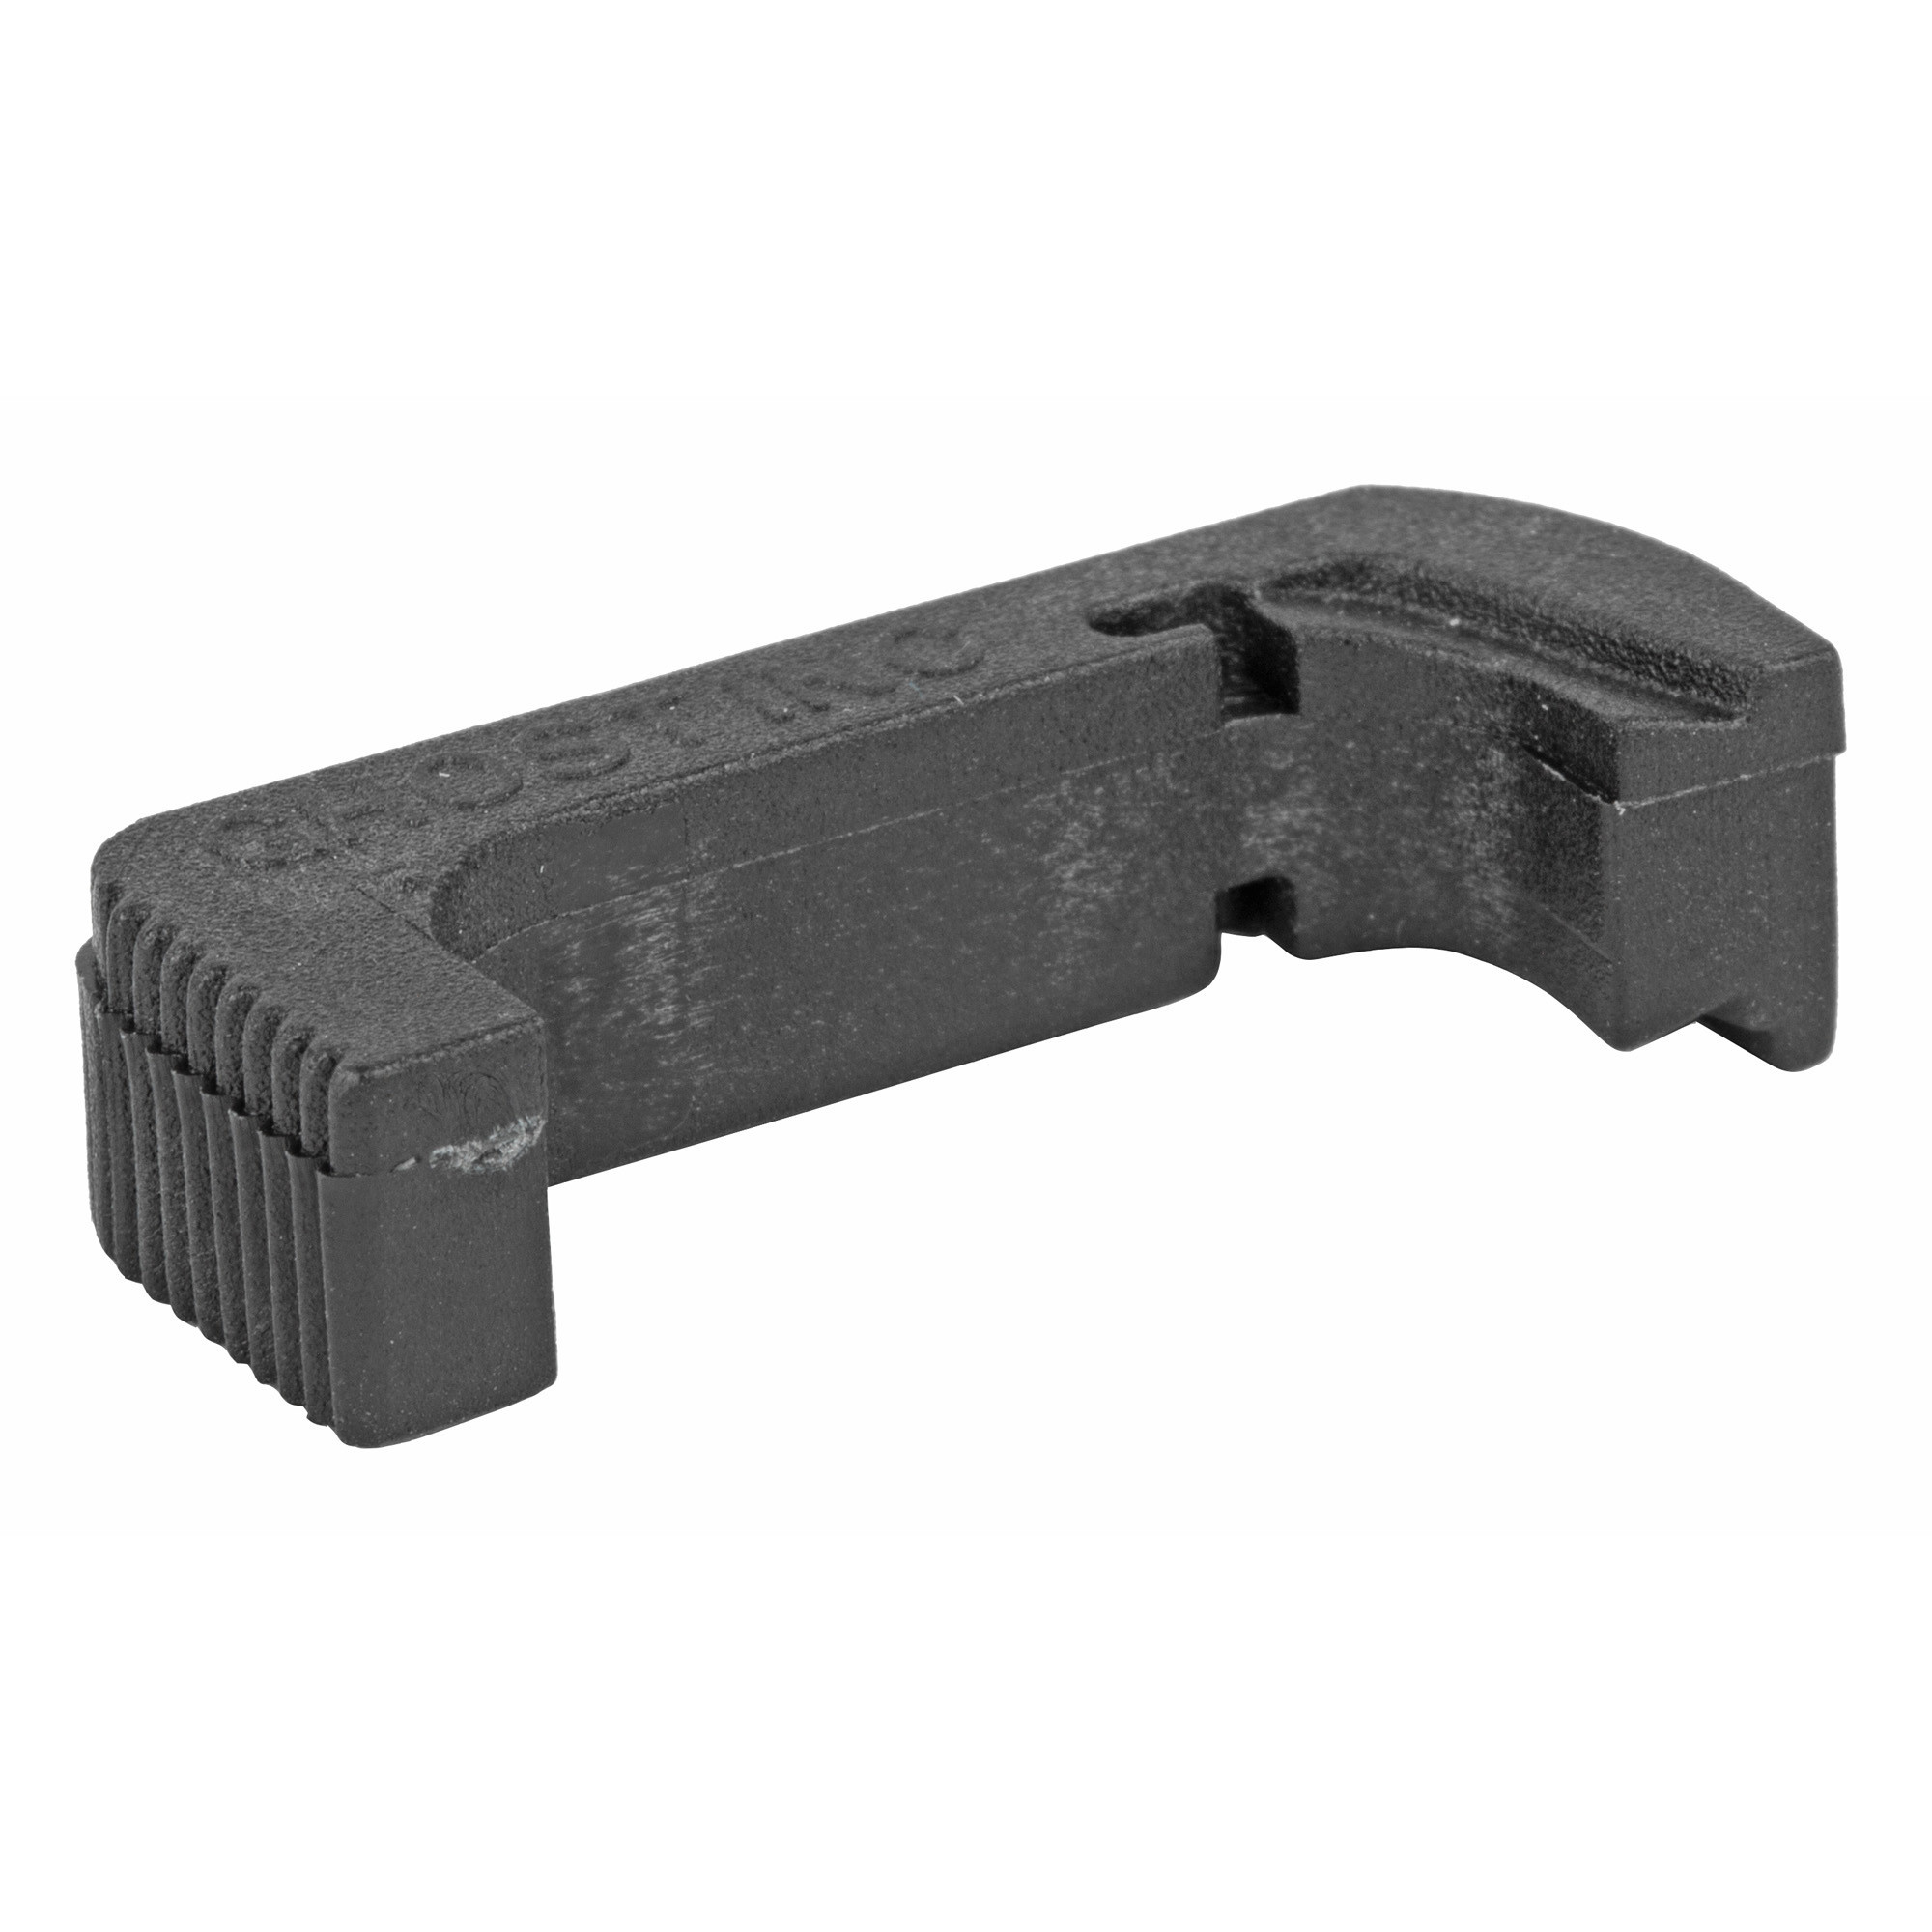 Ghost Inc Ghost Tactical Extended Magazine Release